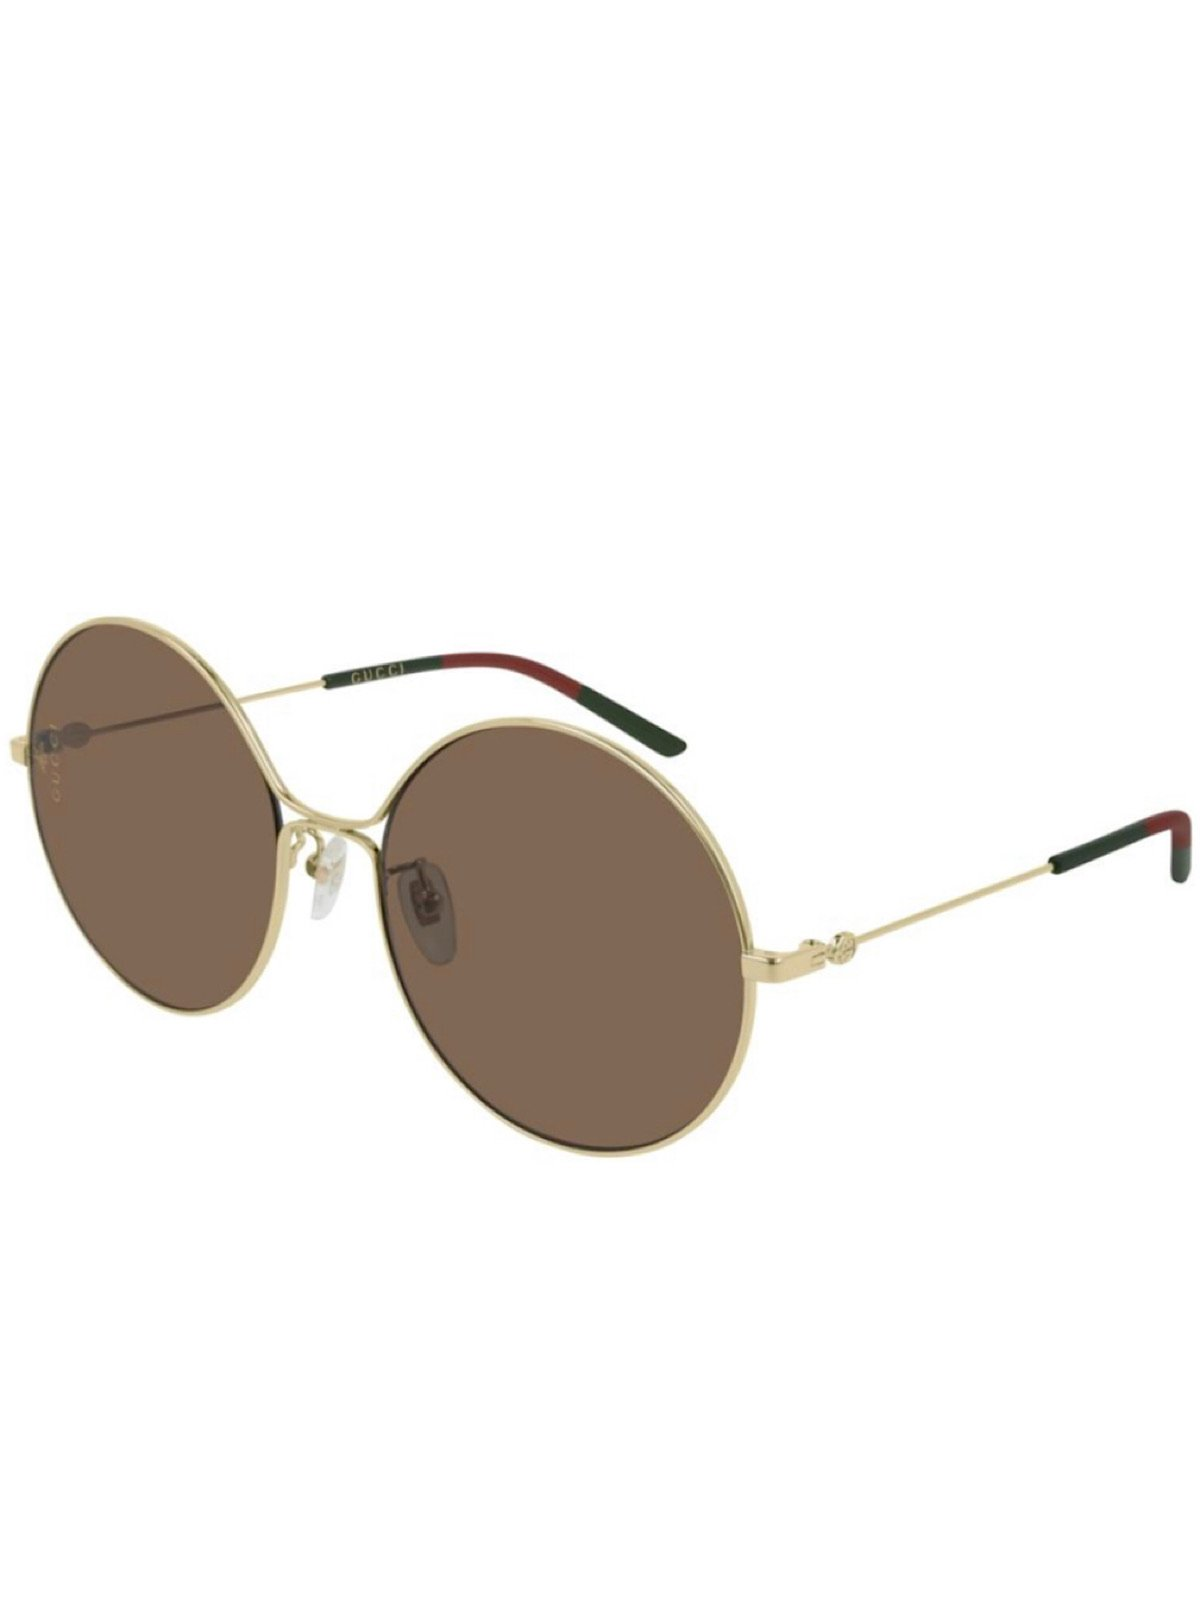 Gucci Sunglasses - Brown - GG0395S